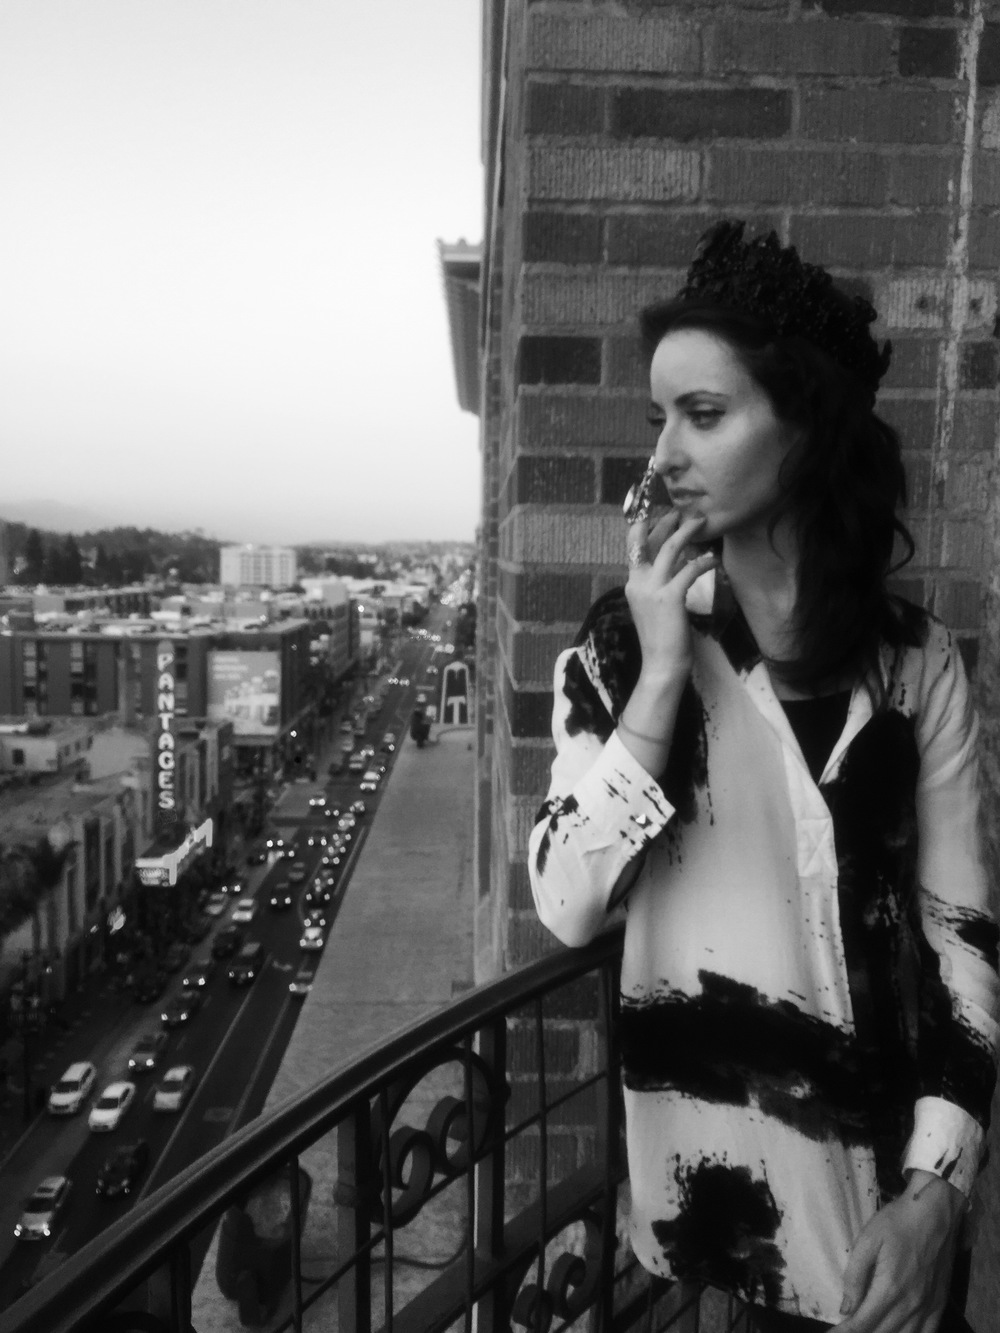 The View, magic hour, and black and white. Photographed by Ronit Aronoff